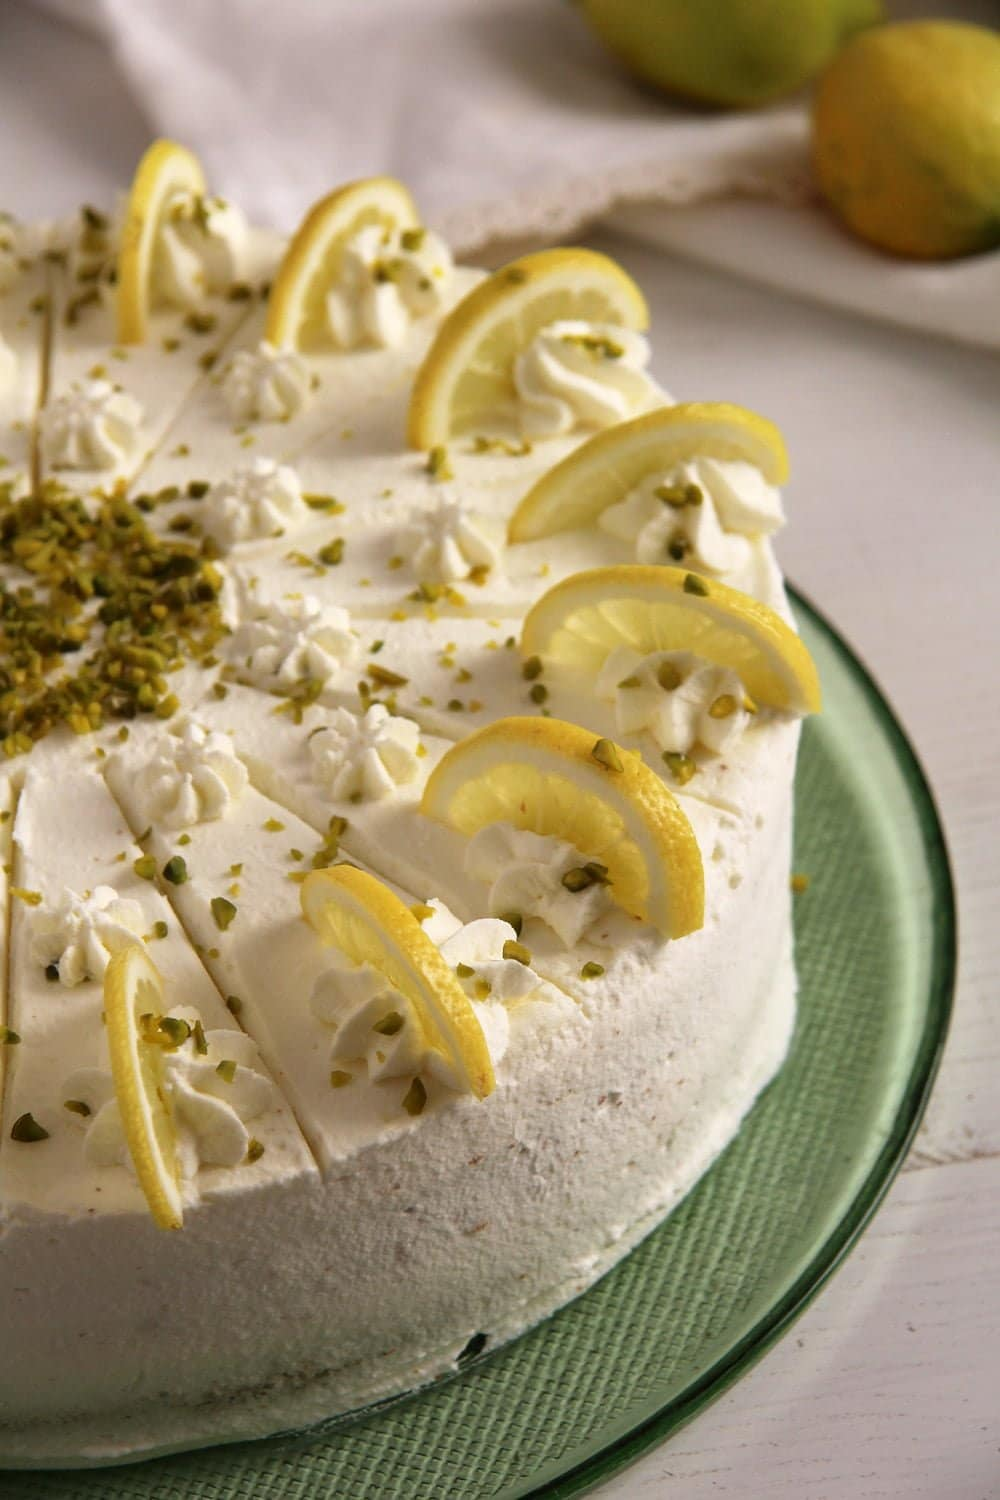 Lemon Buttermilk Torte